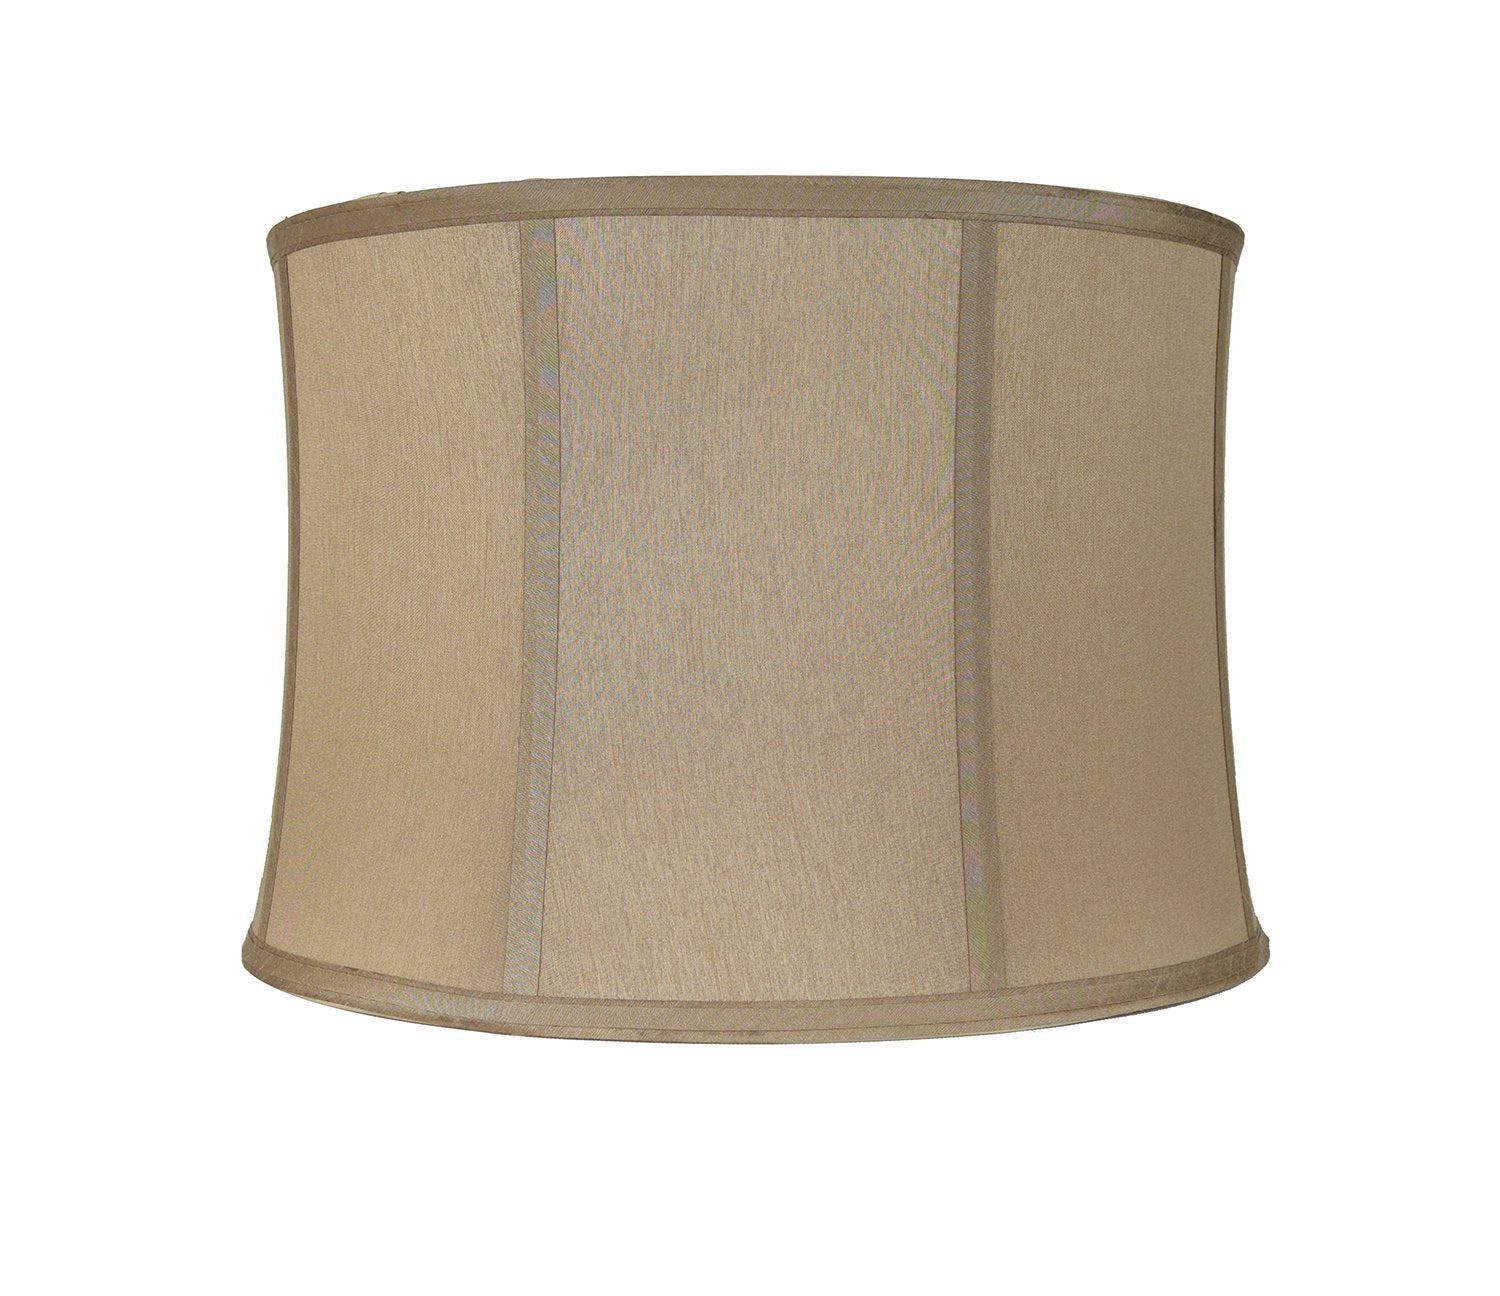 "Softback Drum Lampshade, Faux Silk, 10x11x8"", Spider"